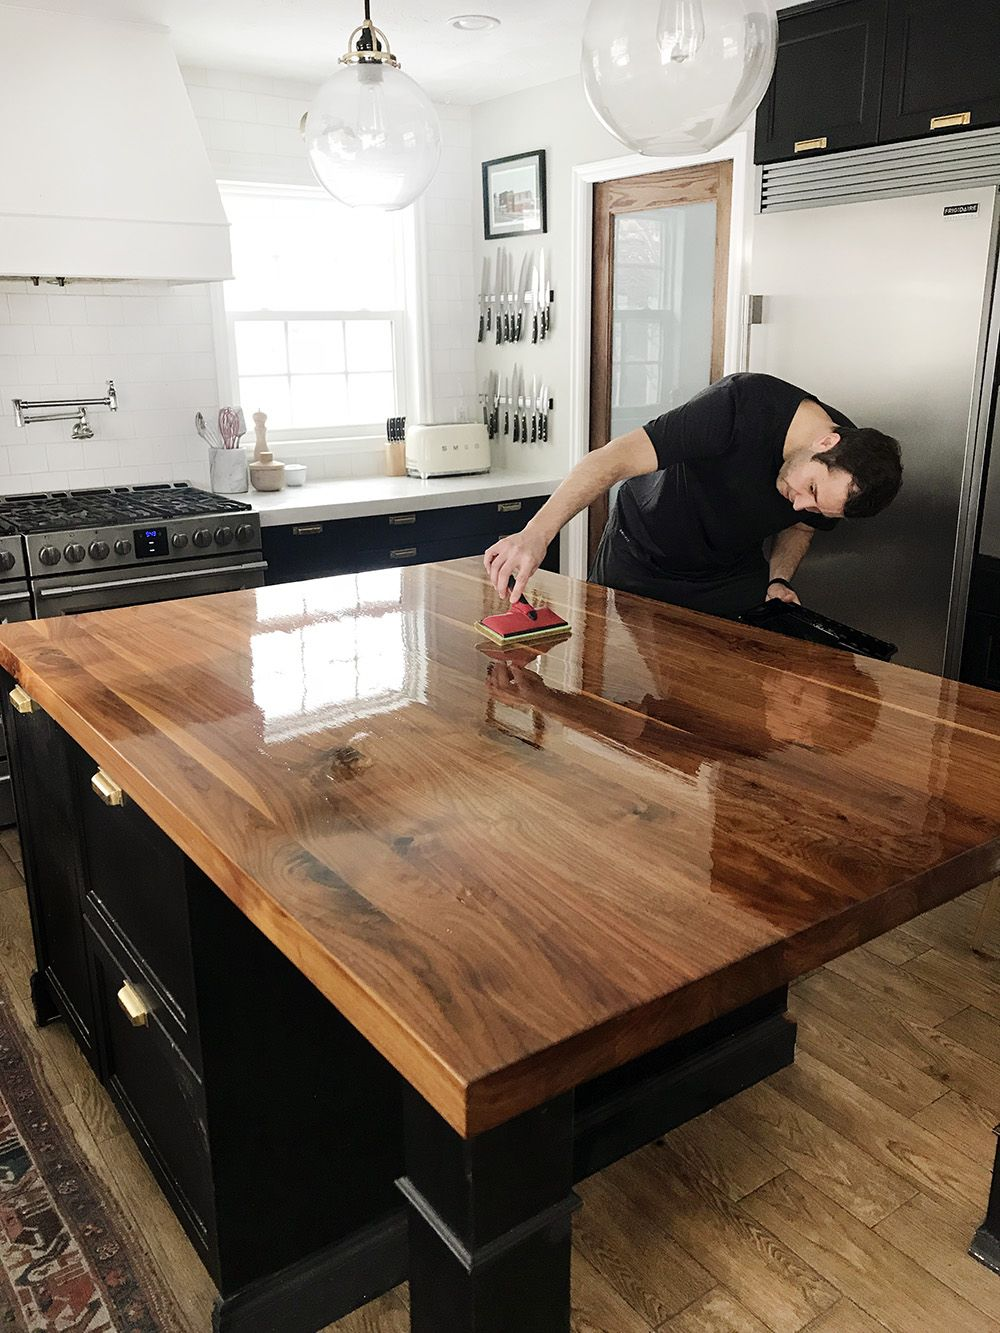 How We Refinished Our Butcher Block Countertop Cheap Kitchen Countertops Kitchen Remodel Countertops Cheap Countertops